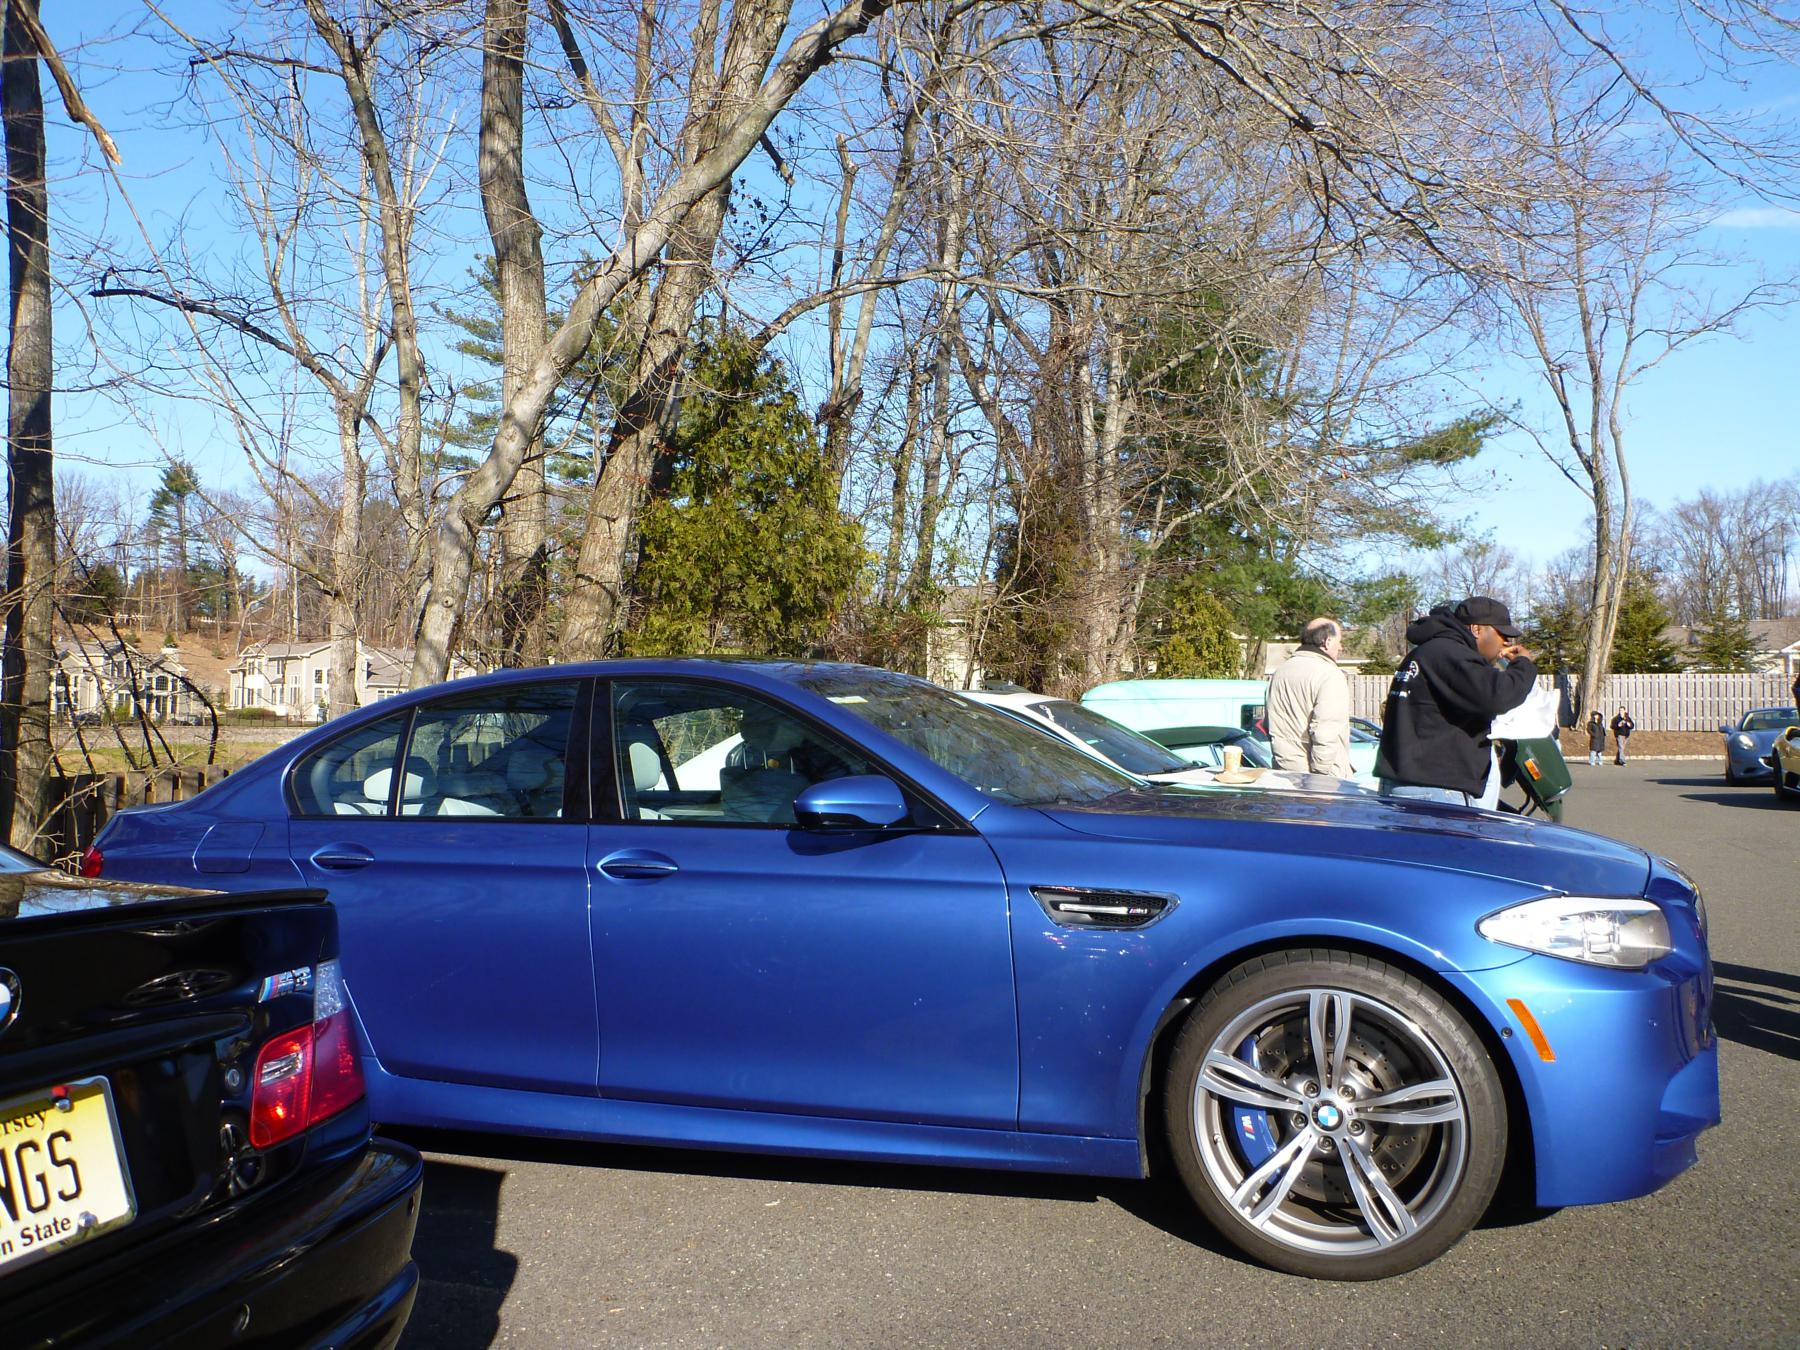 F10 M5 at NJ Cars and Coffee - 12/18/2011-12-18-2011-043_1800x1350.jpg